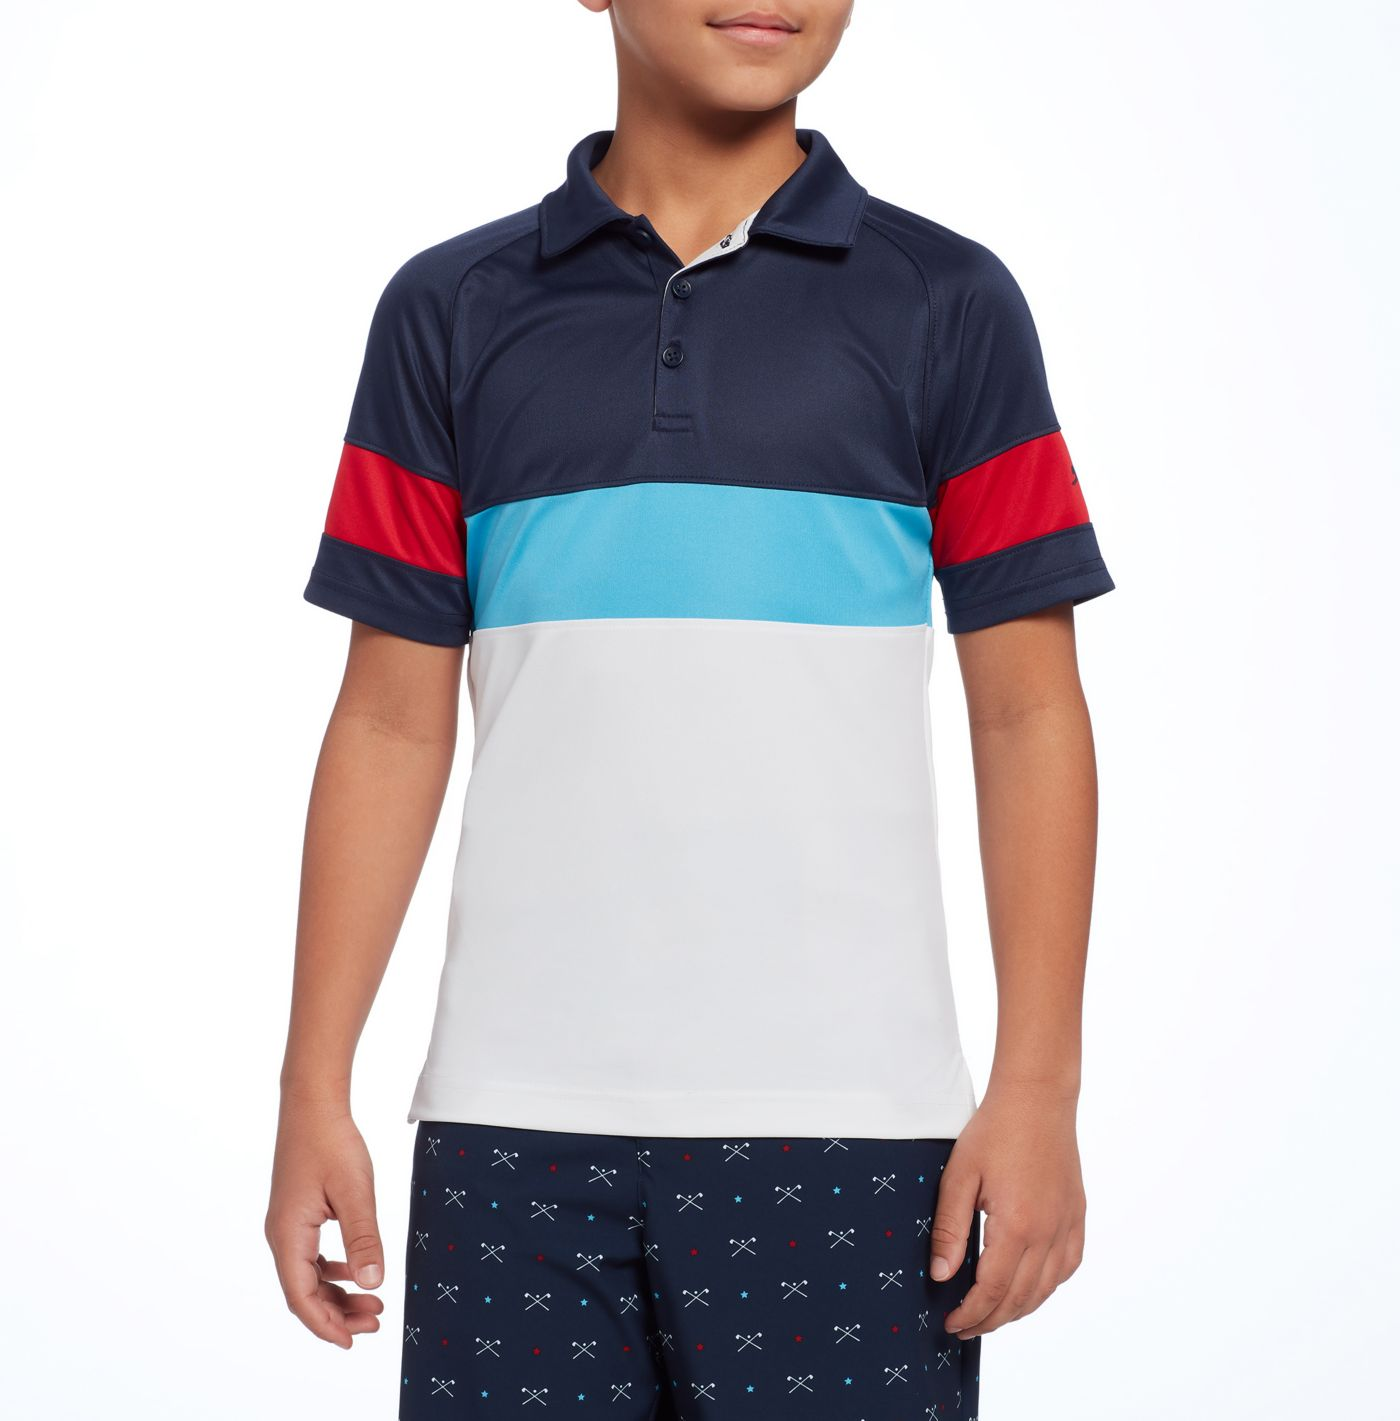 Slazenger Boys' USA Colorblock Golf Polo